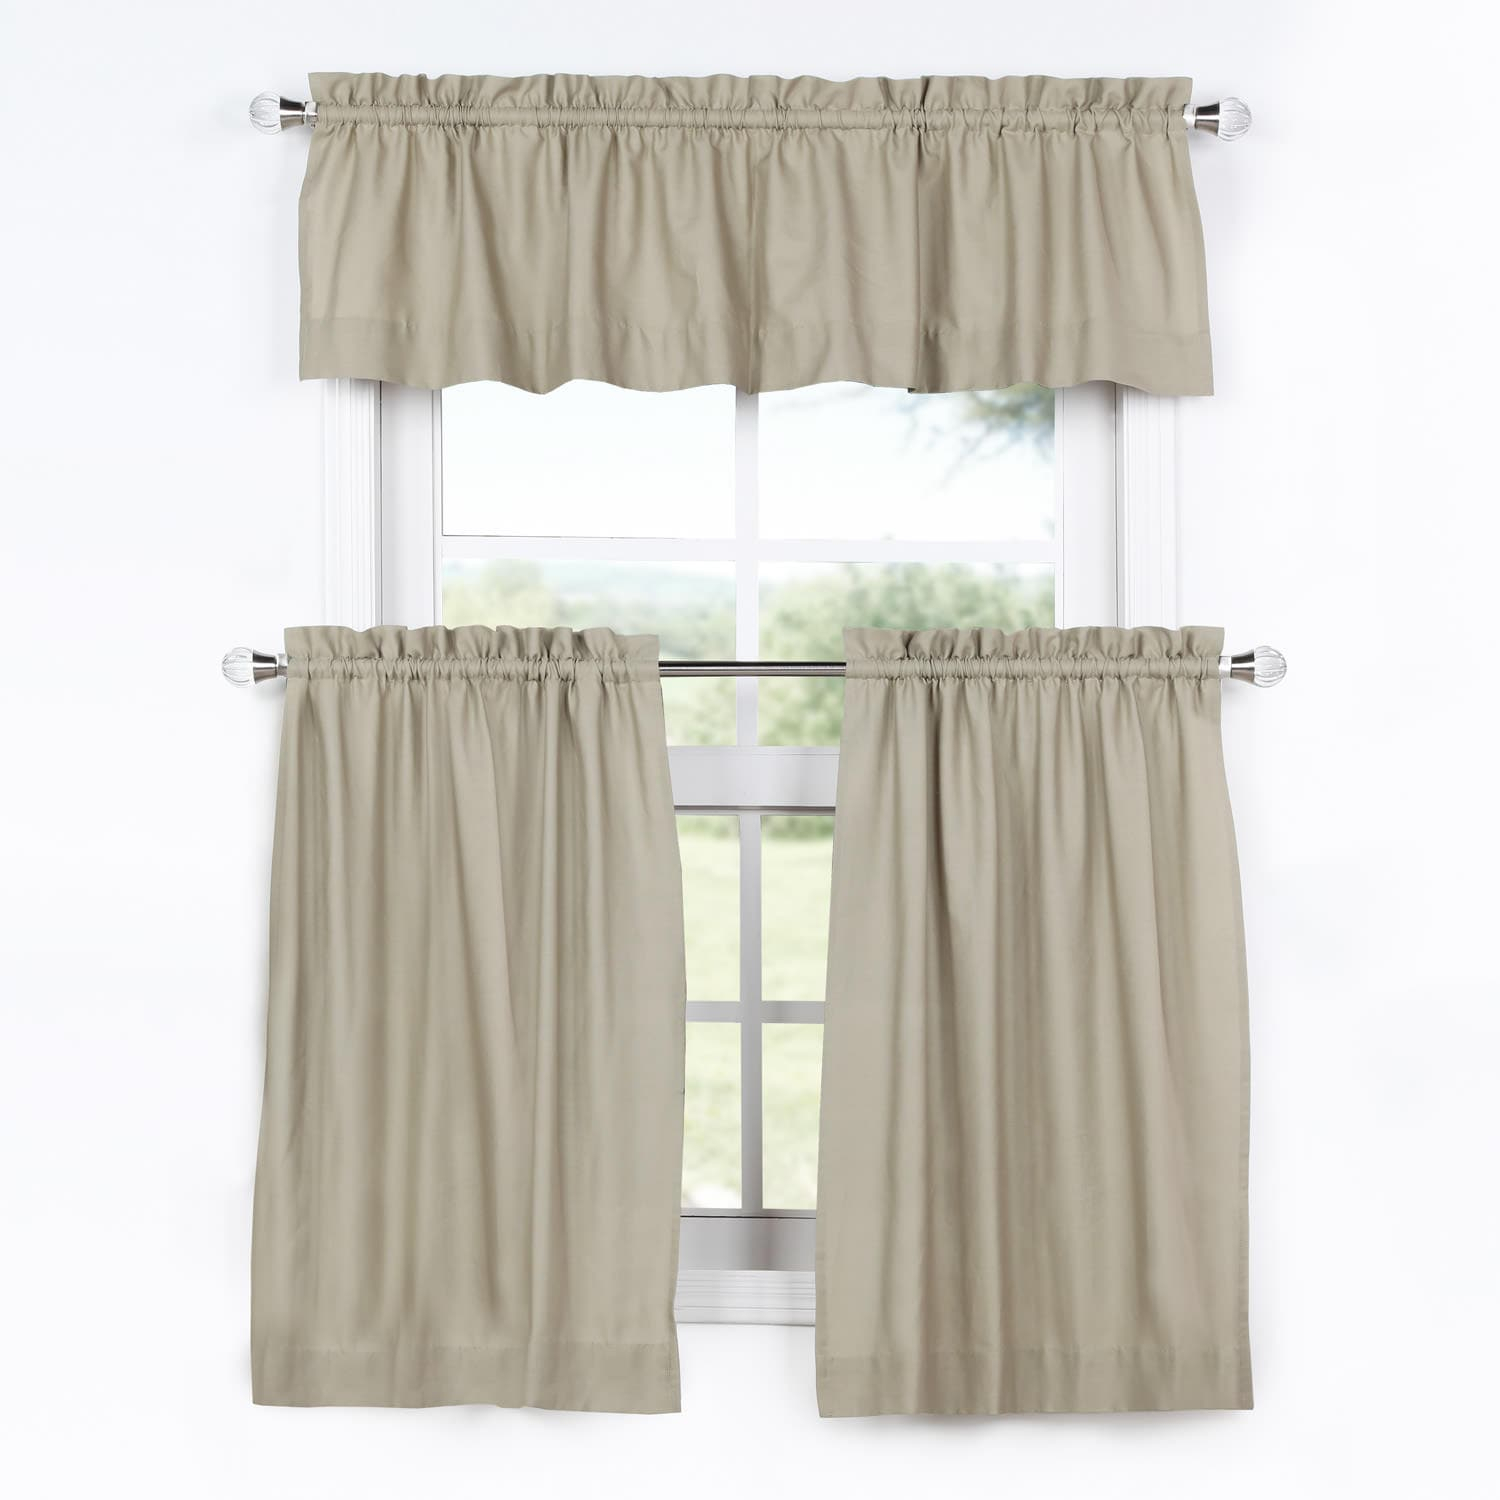 Sandstone Solid Cotton Kitchen Tier Curtain Valance Set 3Pc For Coastal Tier And Valance Window Curtain Sets (View 18 of 20)